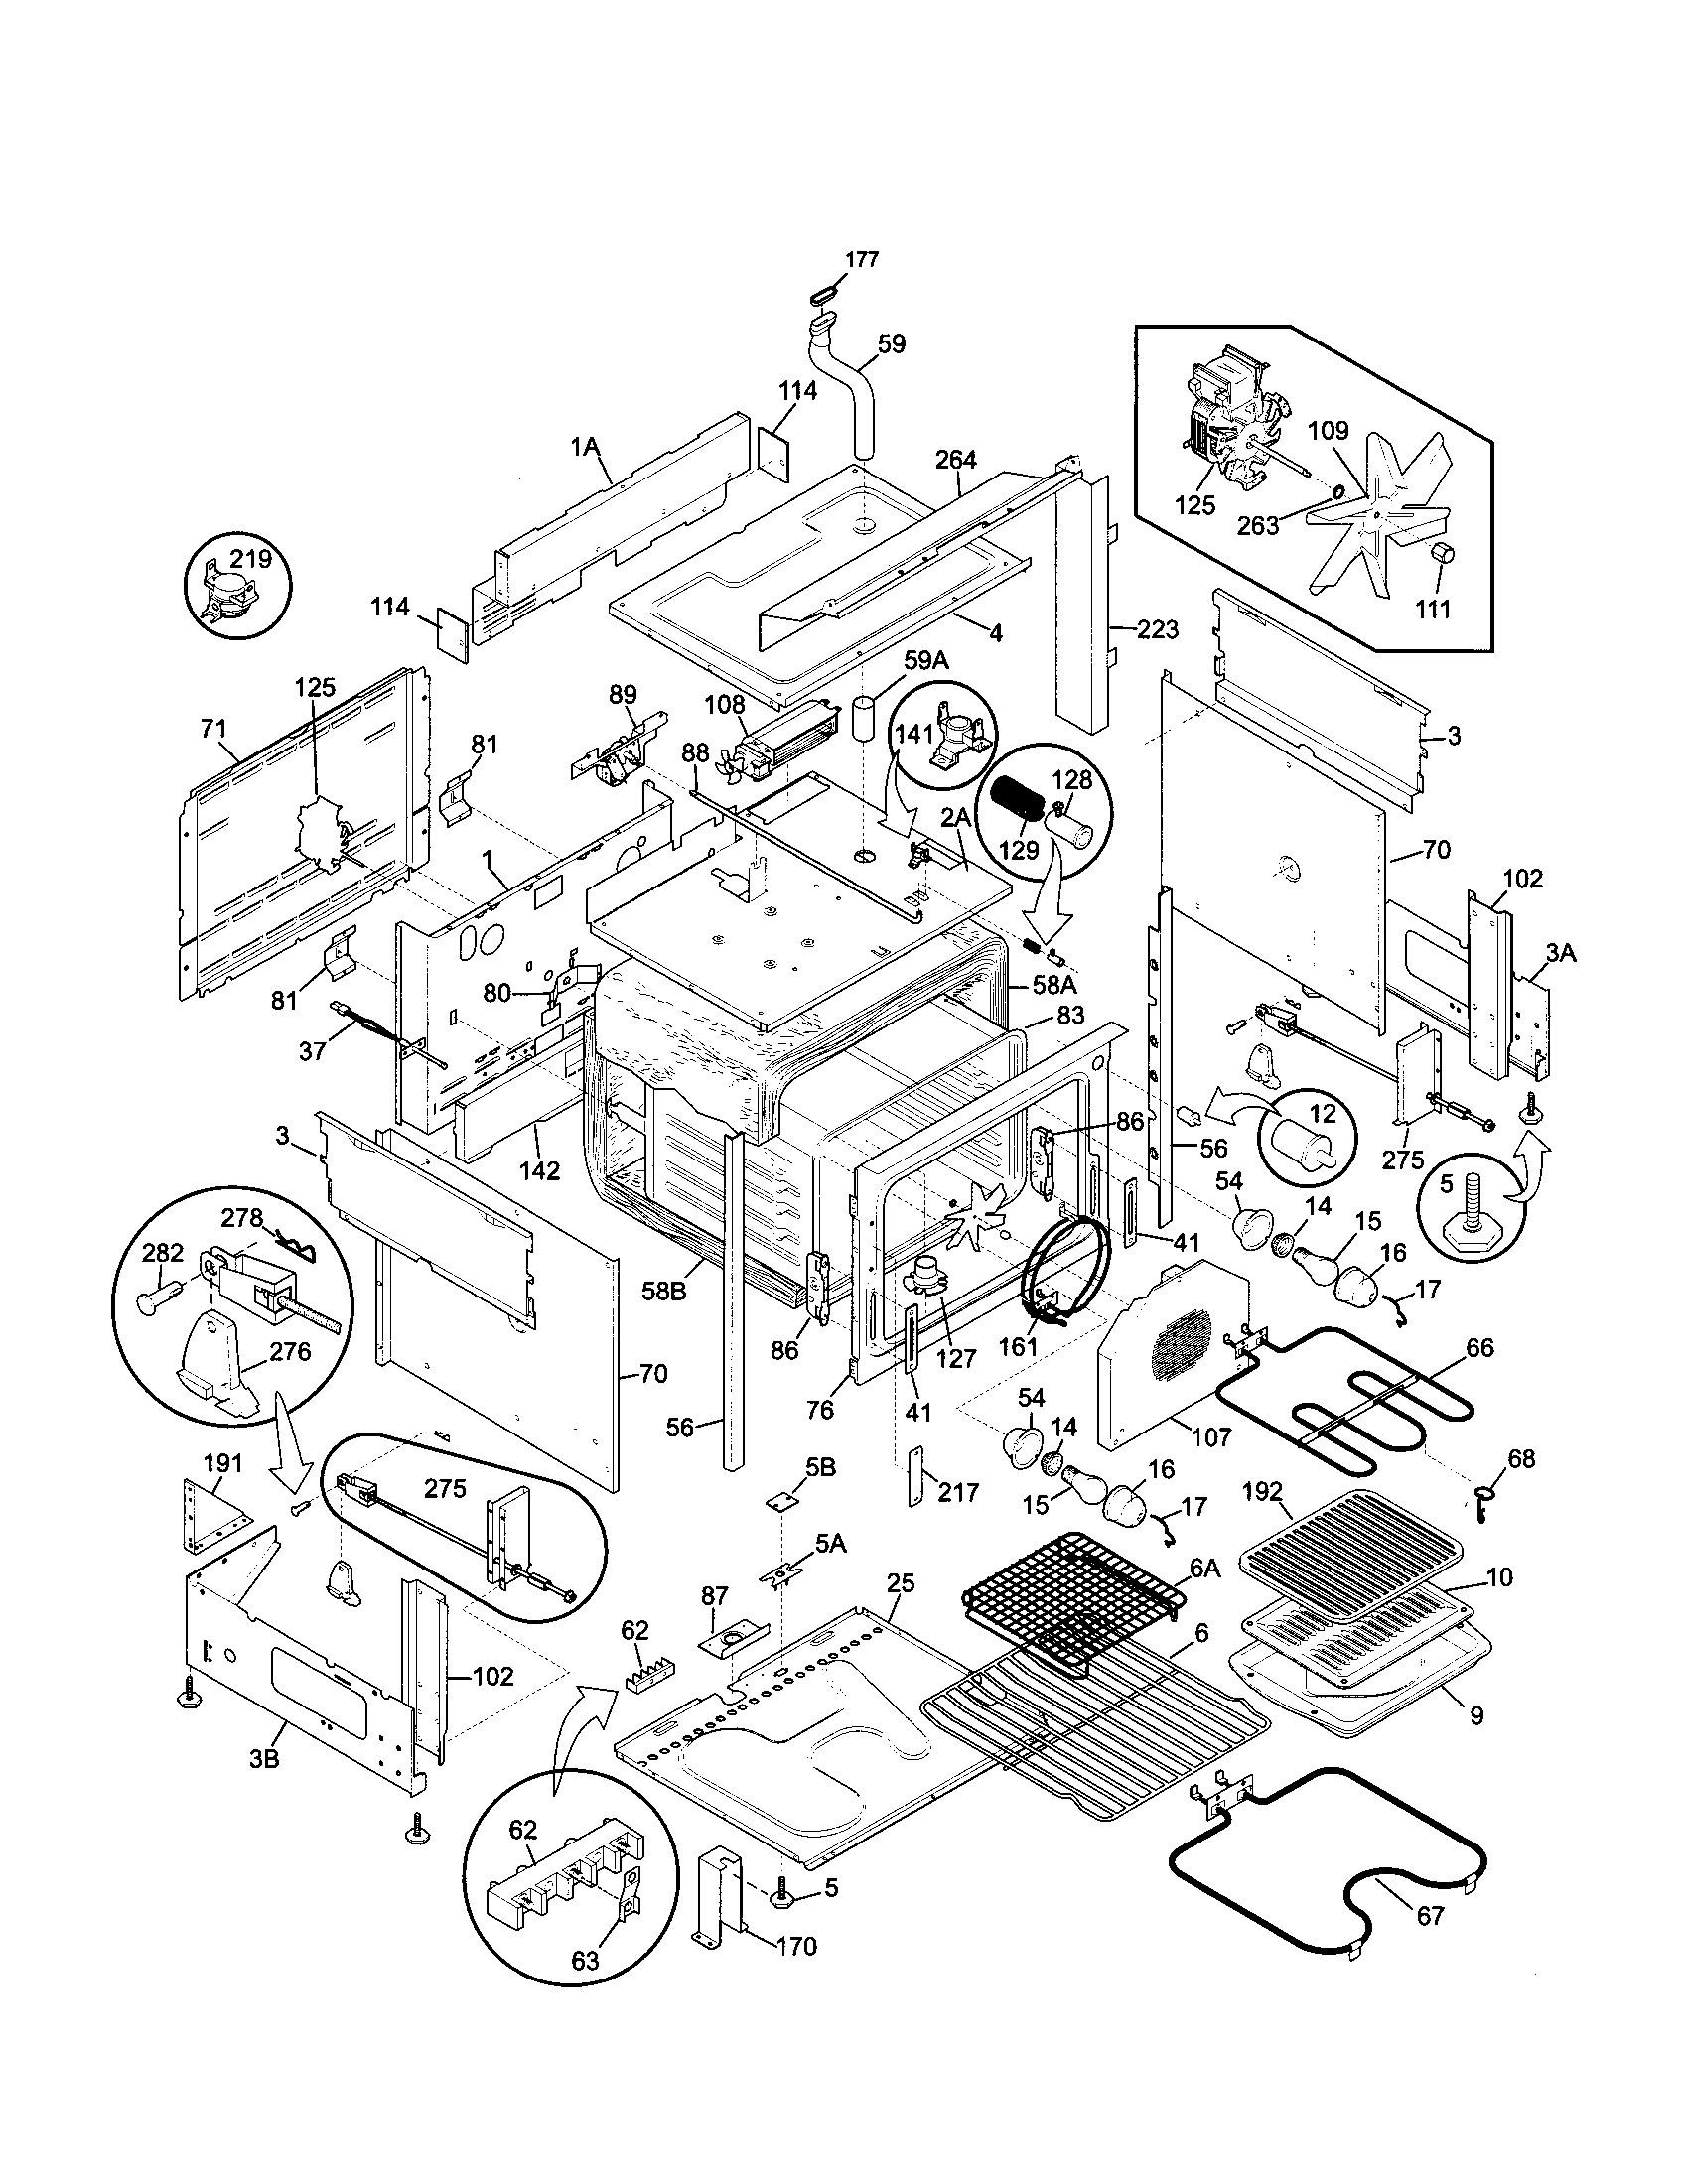 Kenmore Elite Dishwasher Wiring Diagram